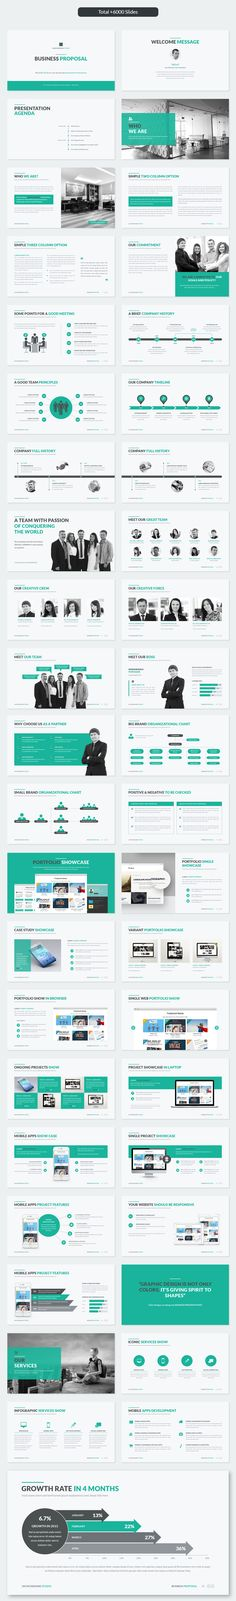 Business Proposal PowerPoint Template - Showcase and discover creative work on the world's leading online platform for creative industrie - Ppt Template Design, Ppt Design, Slide Design, Keynote Template, Brochure Design, Cool Powerpoint, Powerpoint Design, Creative Powerpoint Presentations, Business Powerpoint Templates